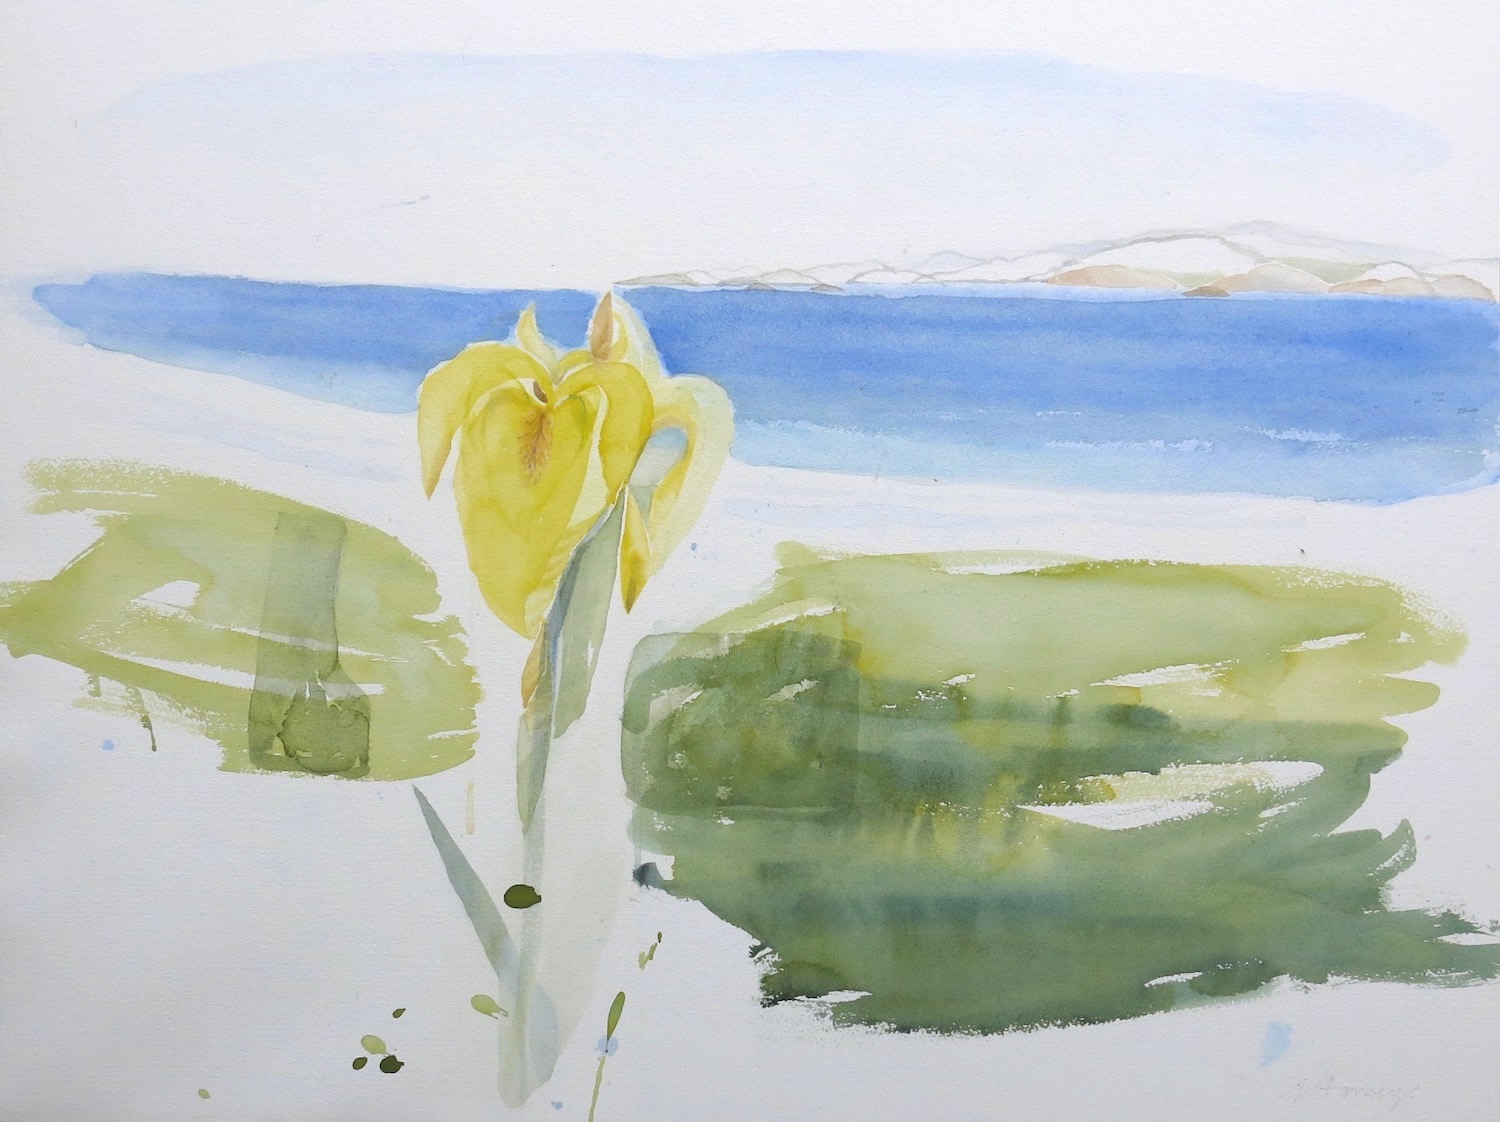 the meadow and The Sound, Iona - watercolour on paper  53 x 70 cm